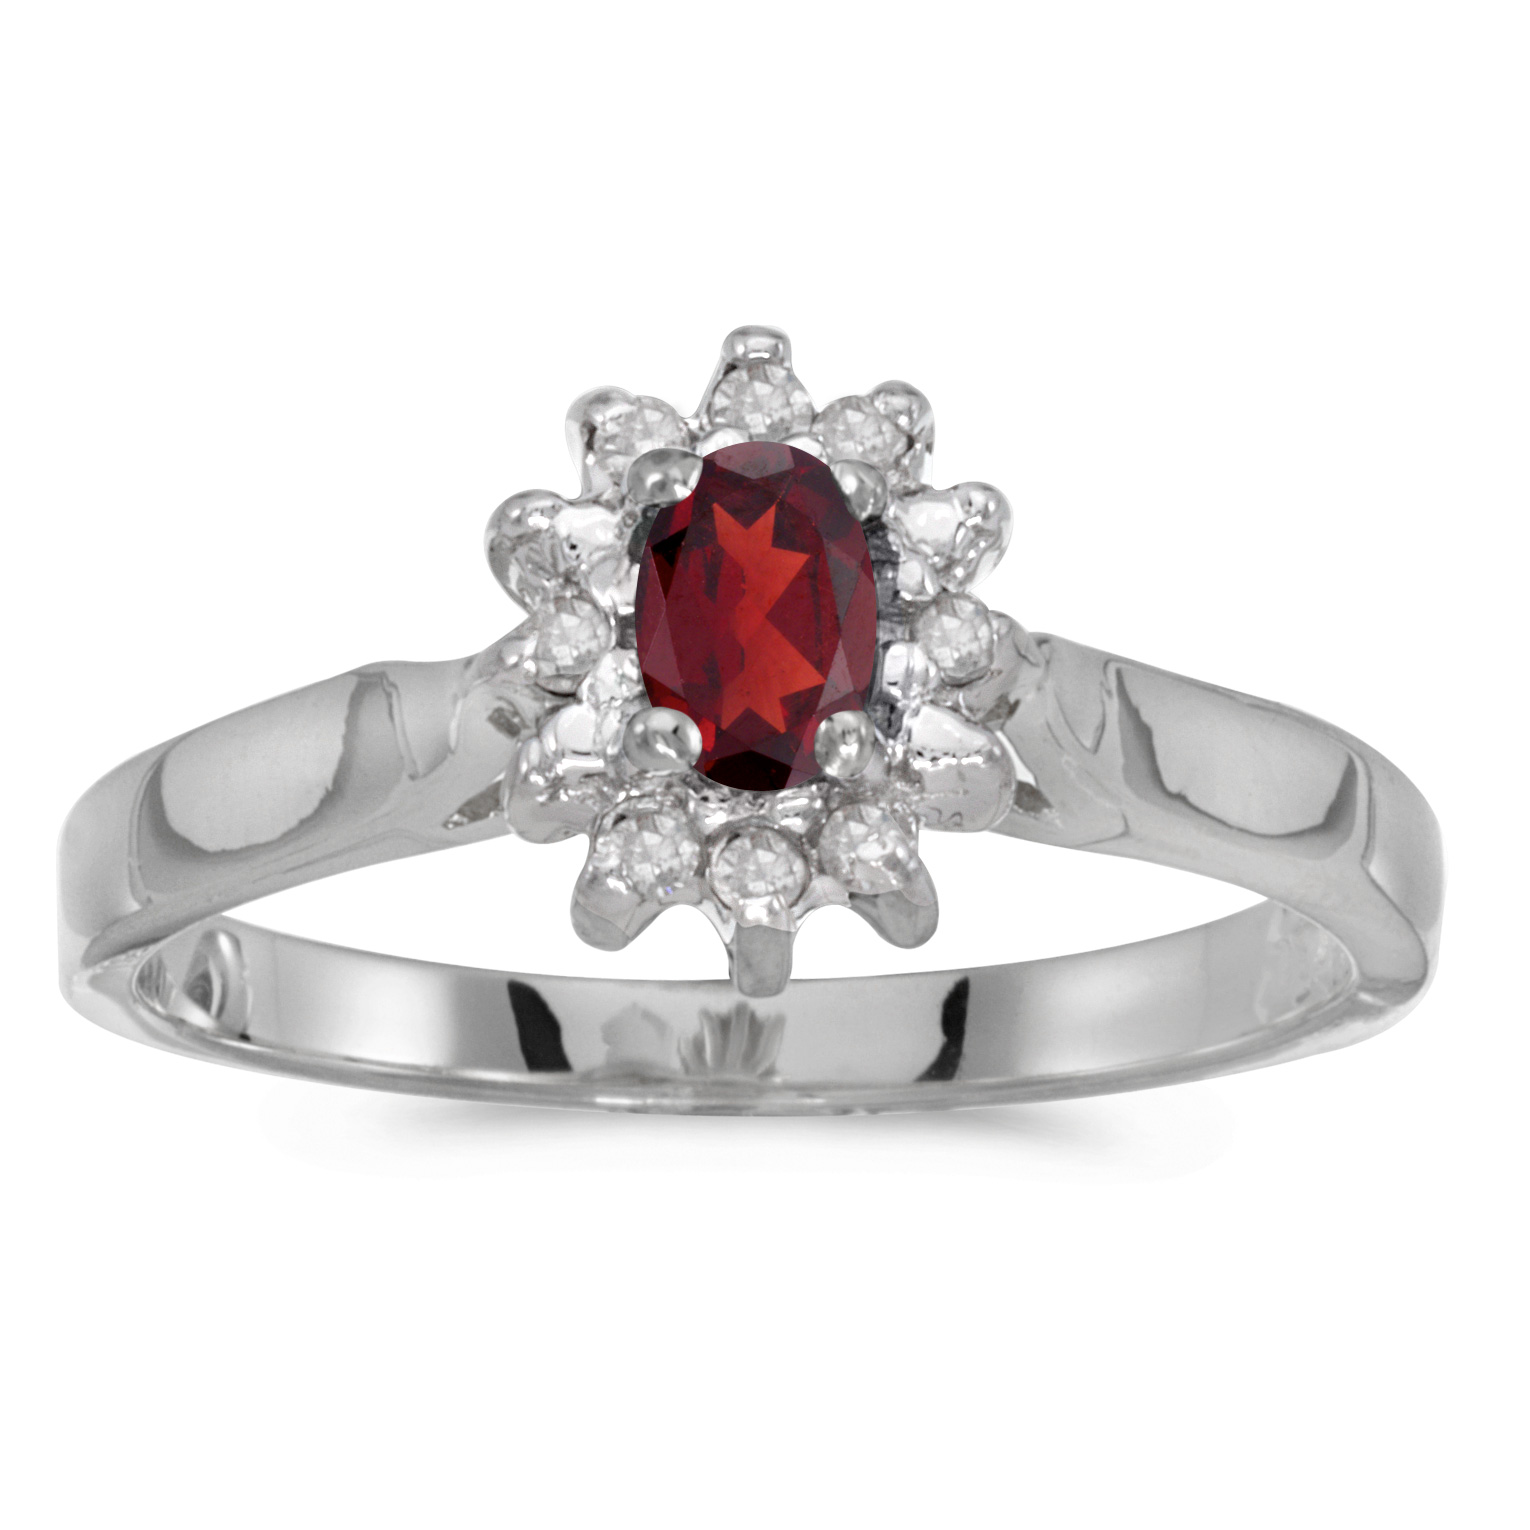 14k White Gold Oval Garnet And Diamond Ring by